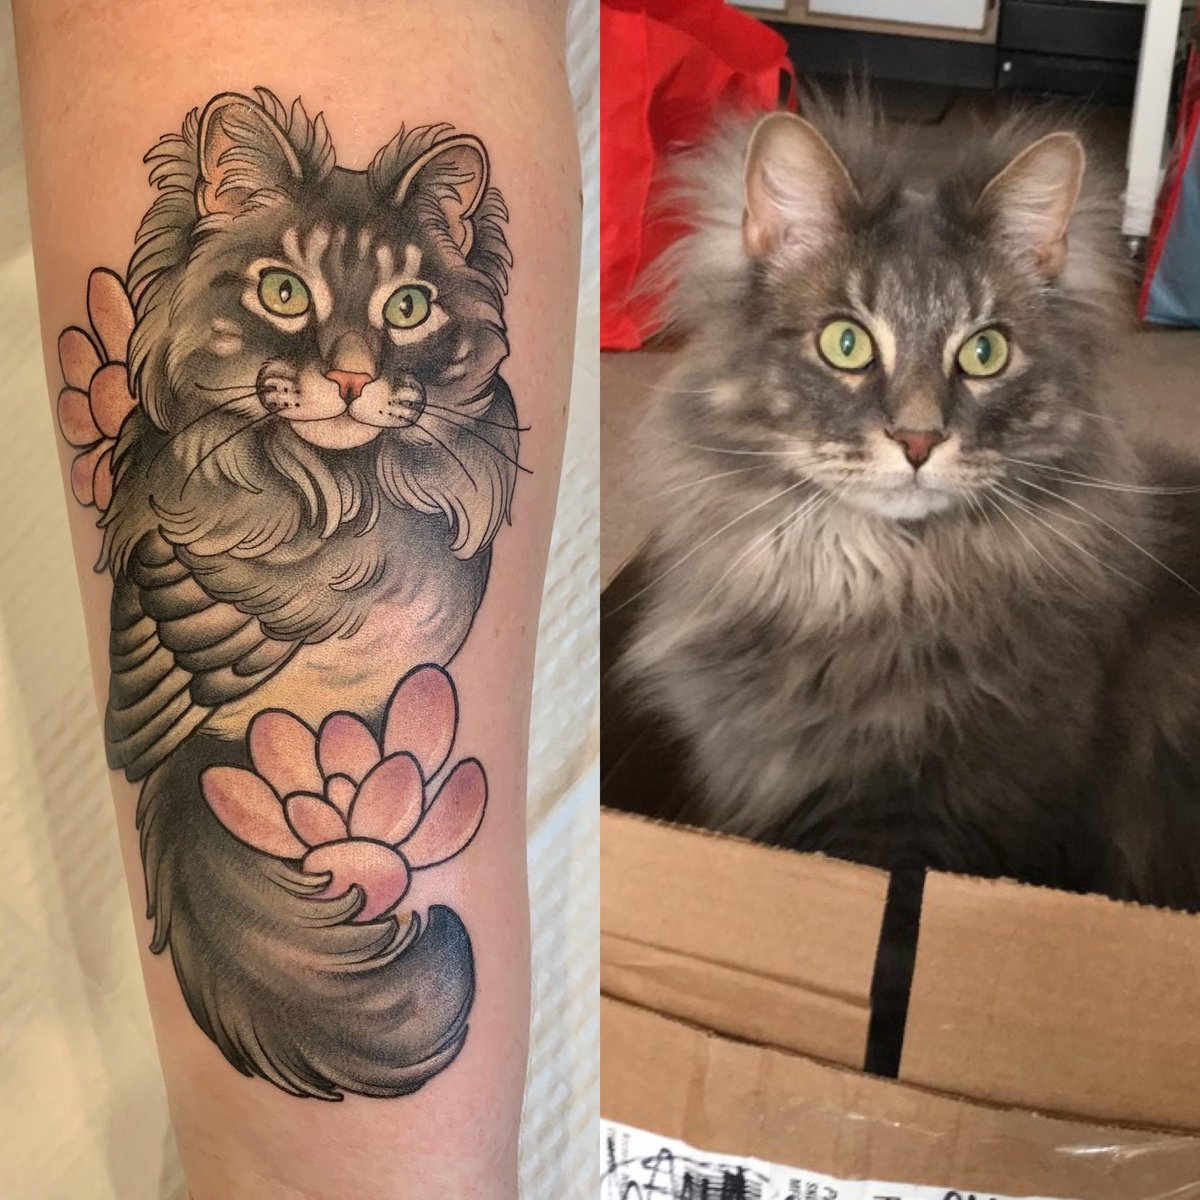 Got a #Fun #Catbird #Tattoo of my #Boy!   #Cats #Cat #Kittens #Kitten #Kitty #Pets #Pet #Meow #Moe #CuteCats #CuteCat #CuteKittens #CuteKitten #MeowMoe     .